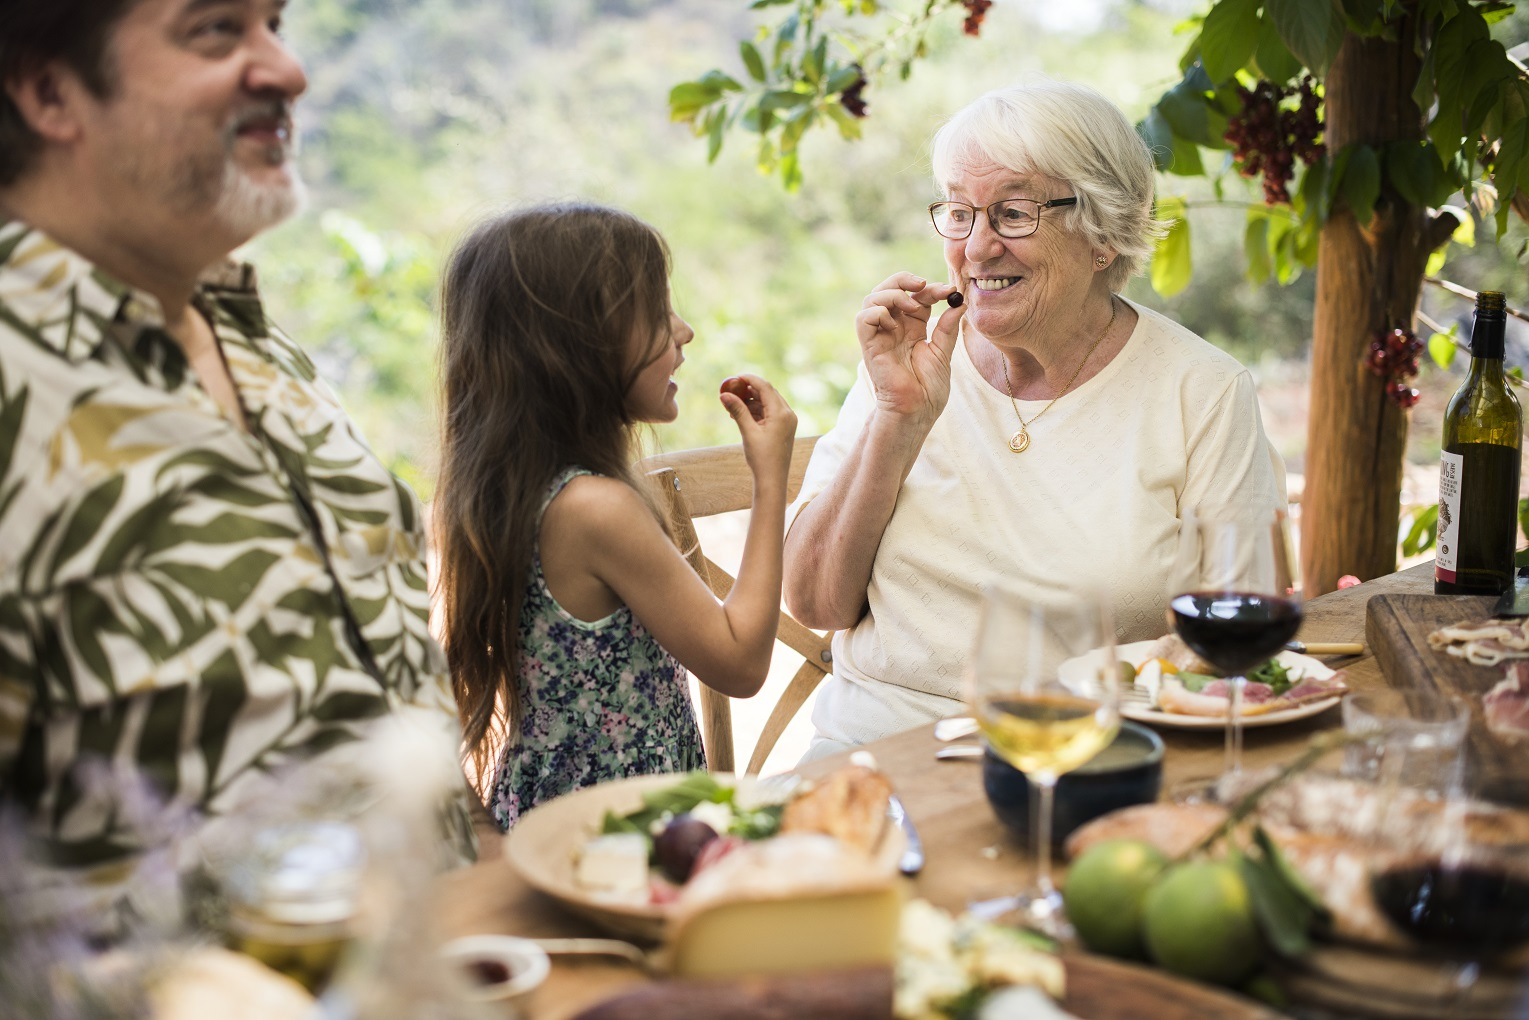 grandmother and grand daughter laughing and eating in outdoor luxury kitchen